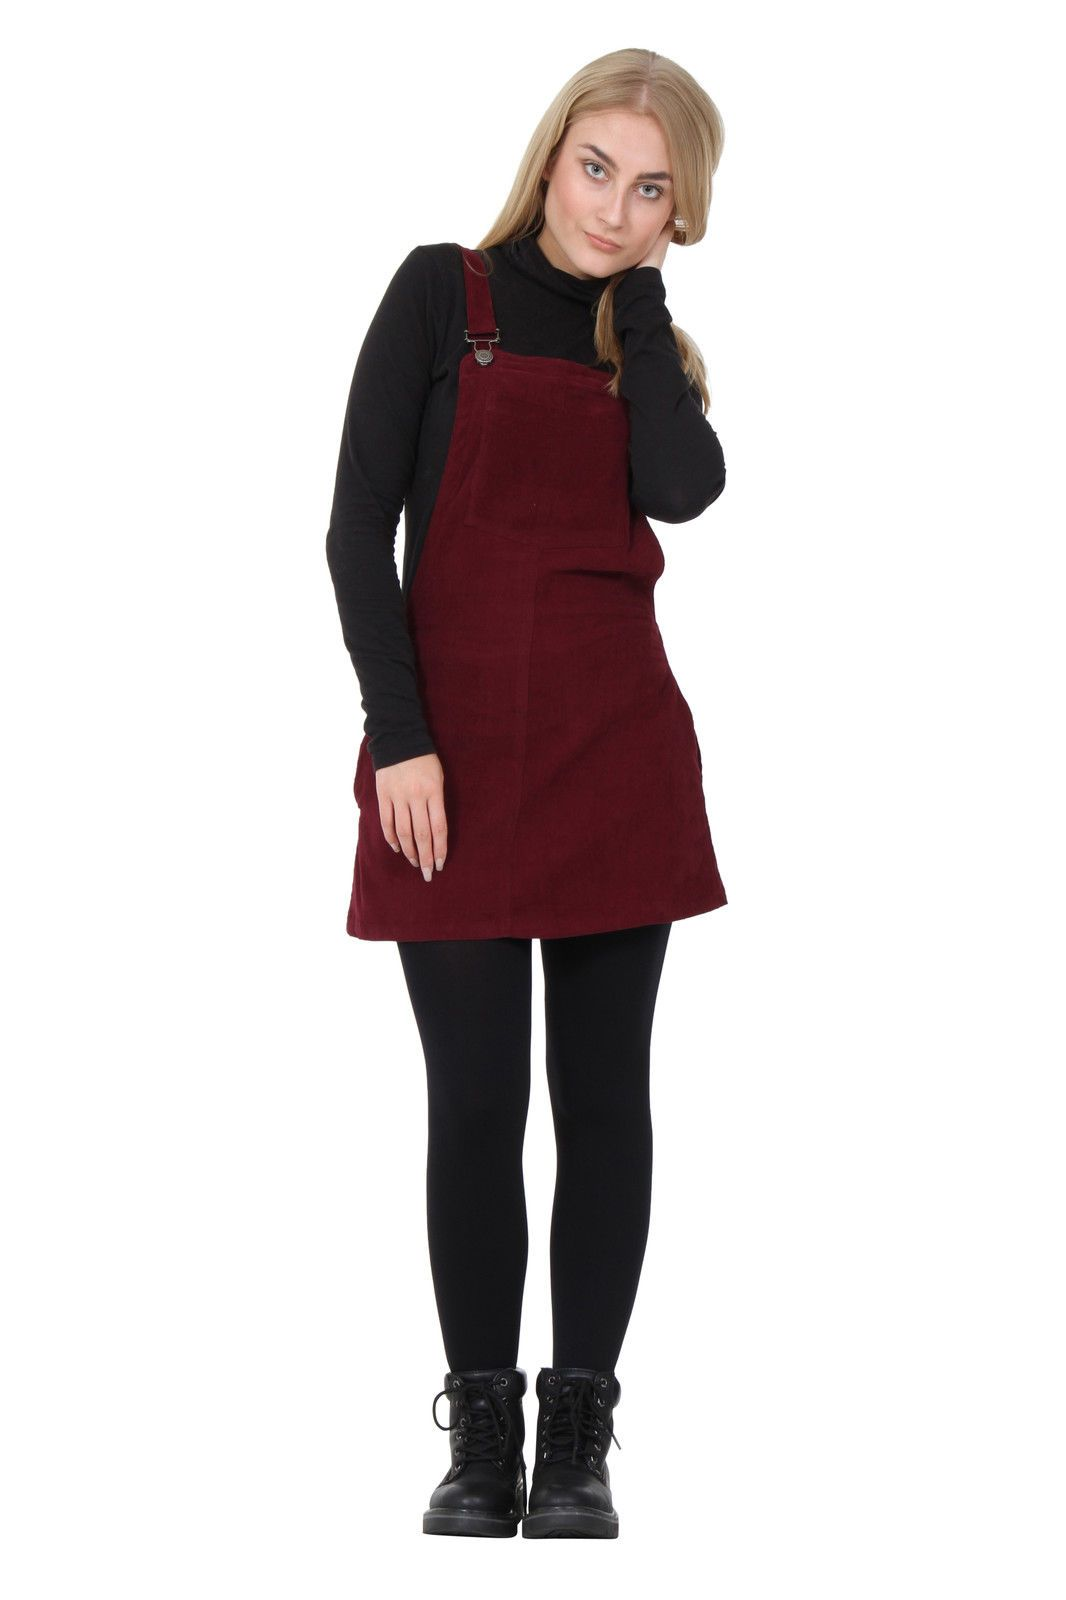 3f1cb2b0e5 Corduroy Dungaree Dress lightweight burgundy Bib overall skirt short with  bib